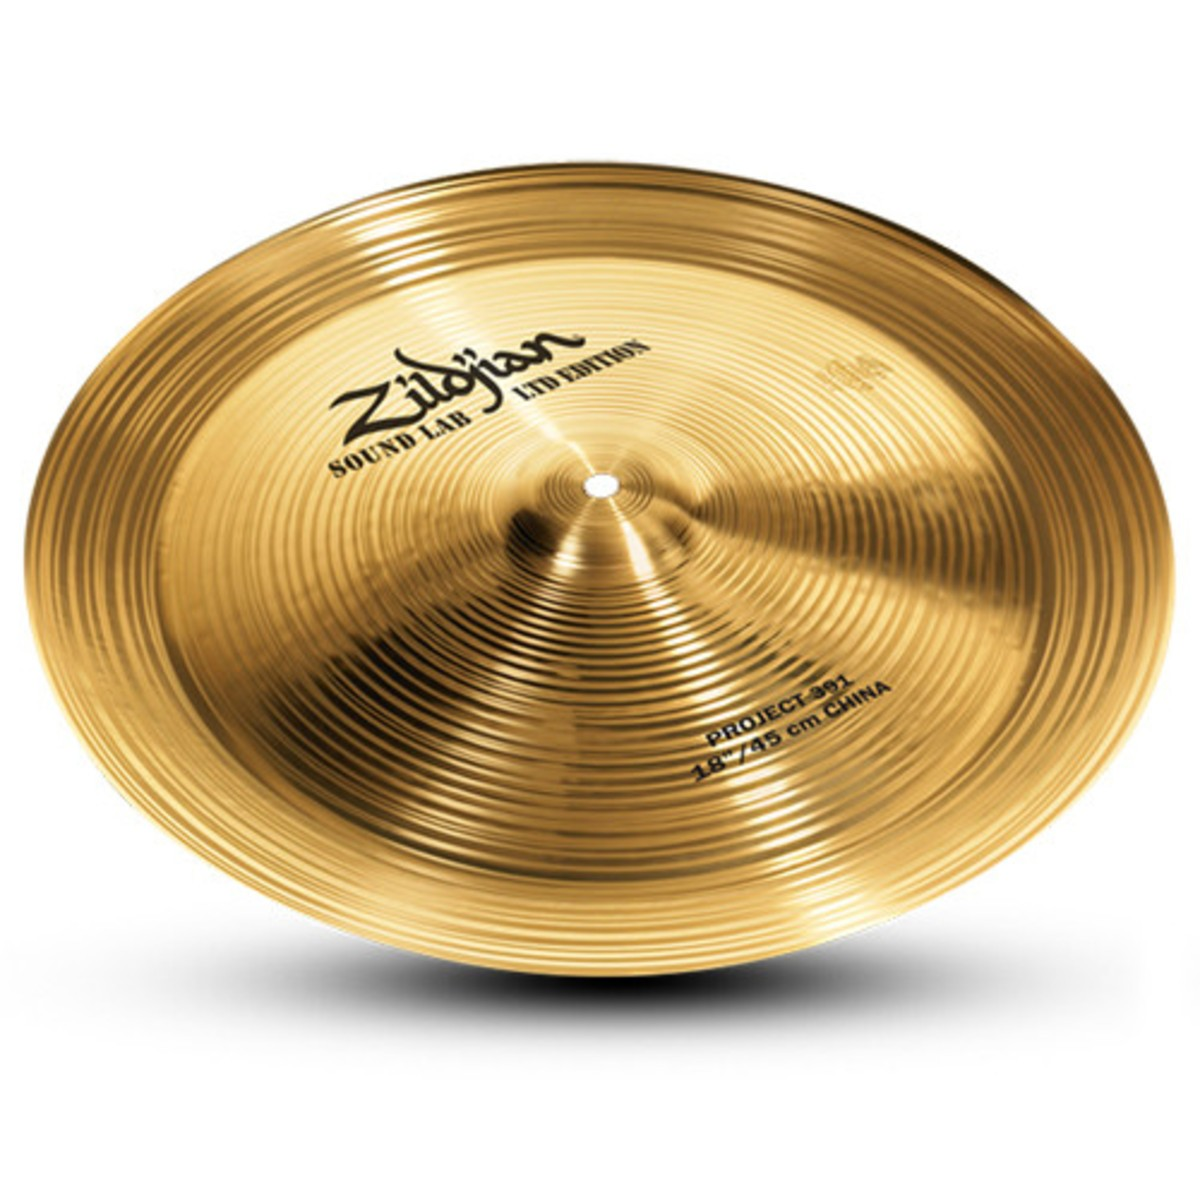 Prato Zildjian Project 391 Ltd Edition 19 Sl19ch - China